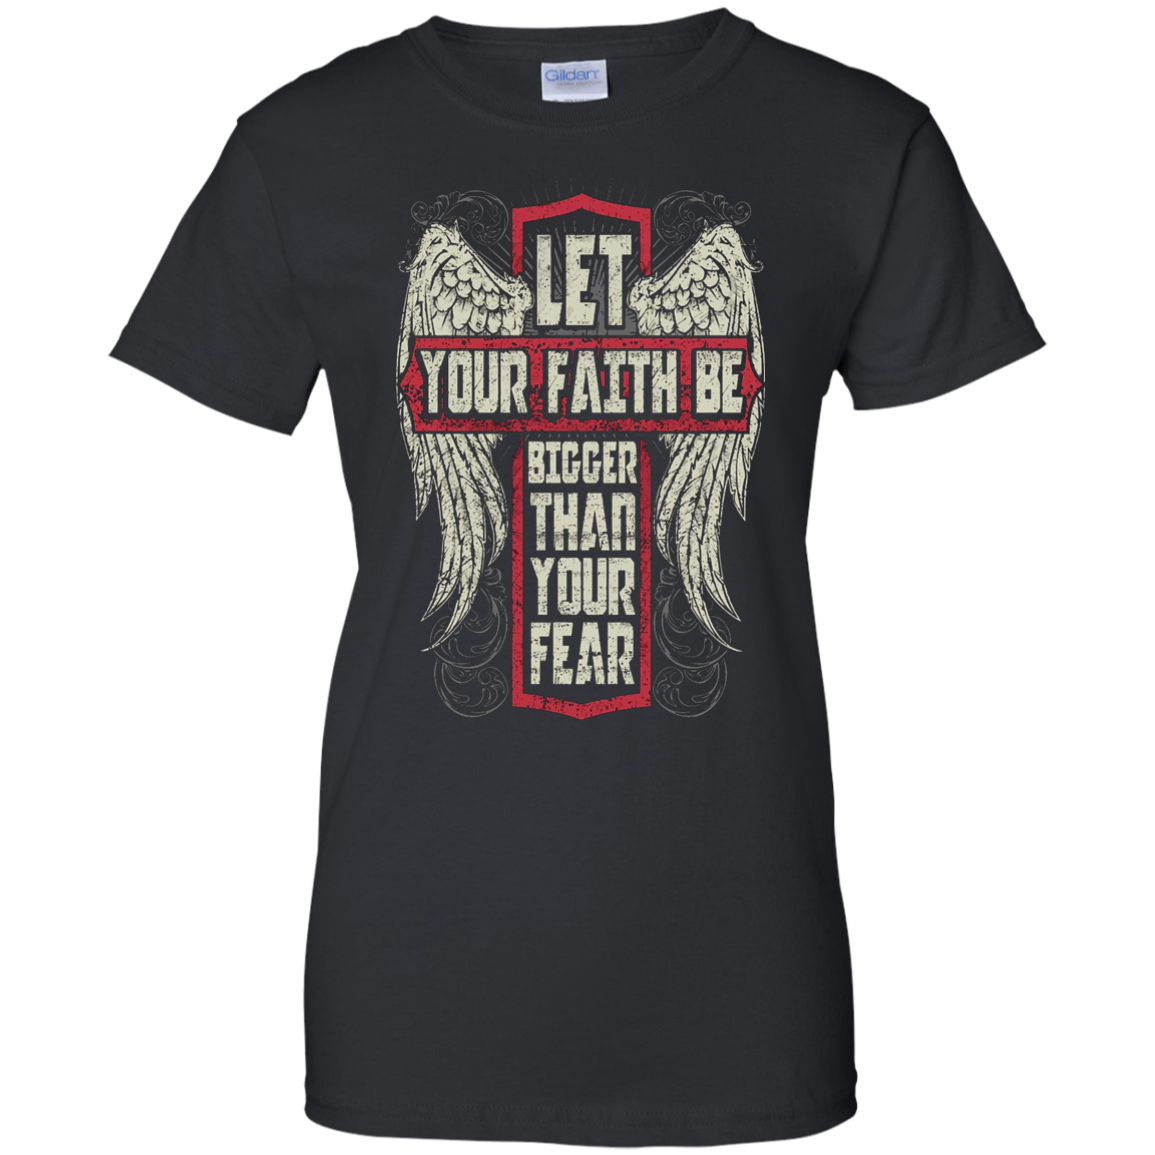 Christian - Let your faith be bigger than your fear T-shirt